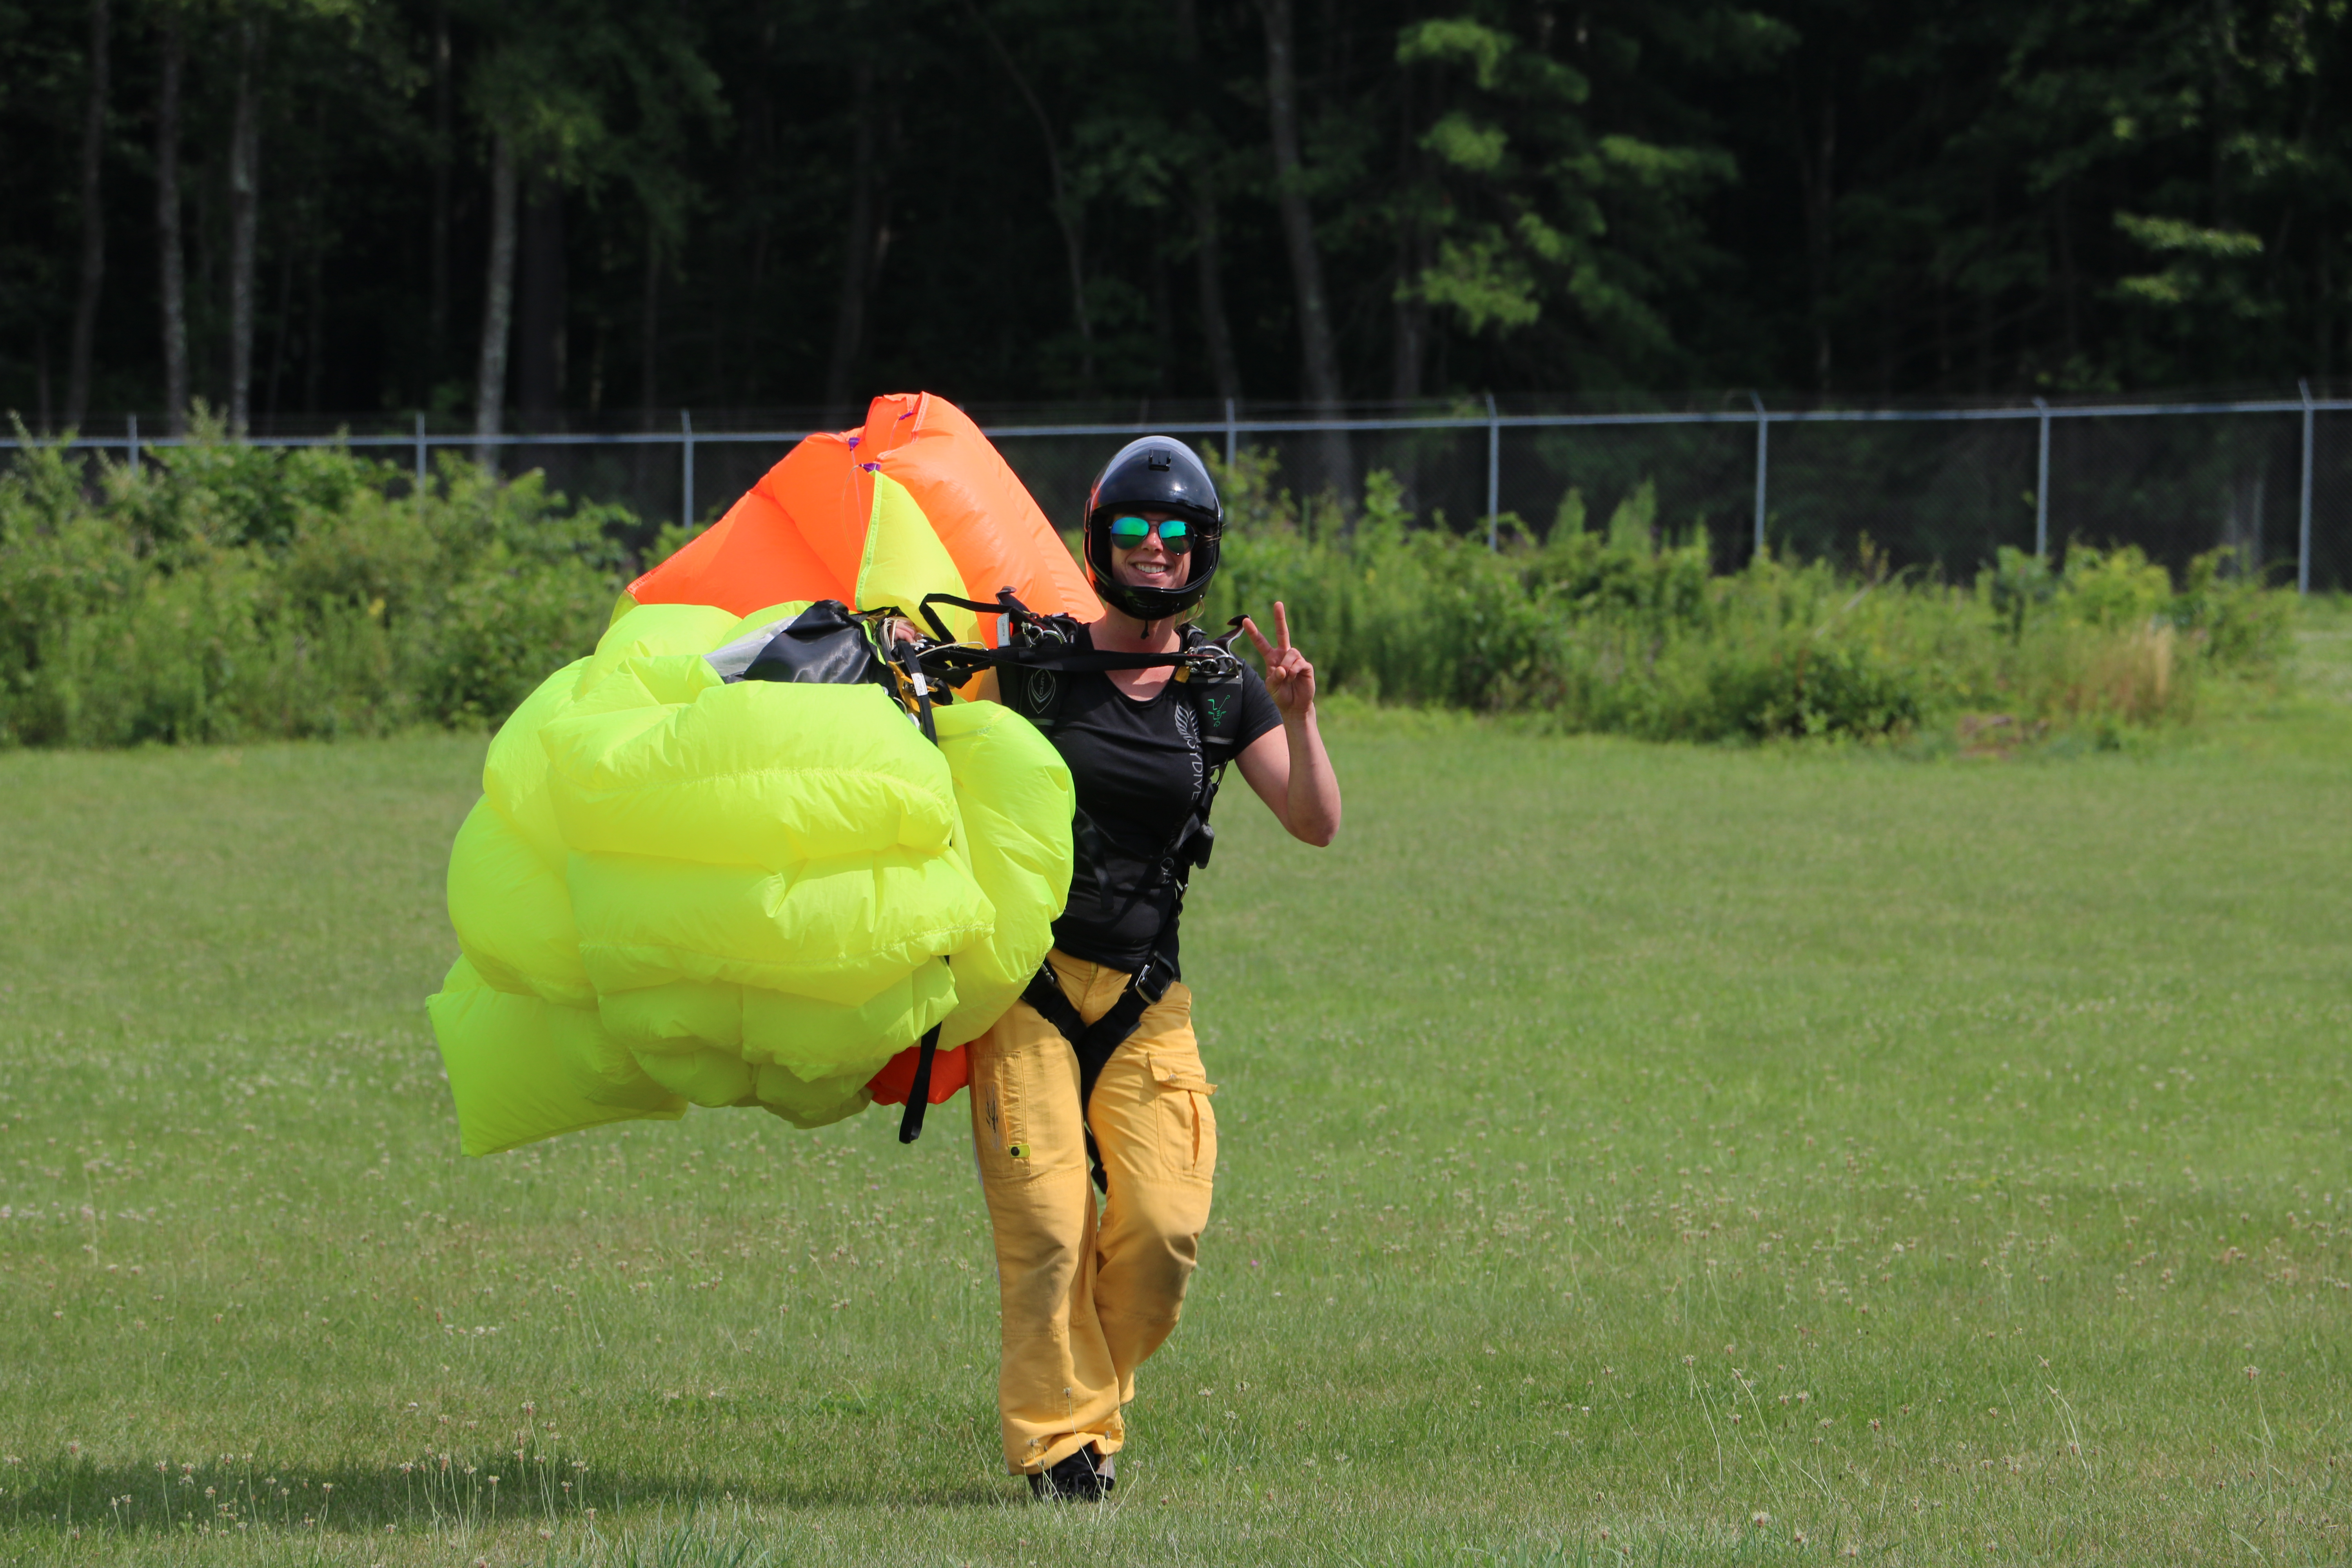 How To Become A Professional Skydive Instructor